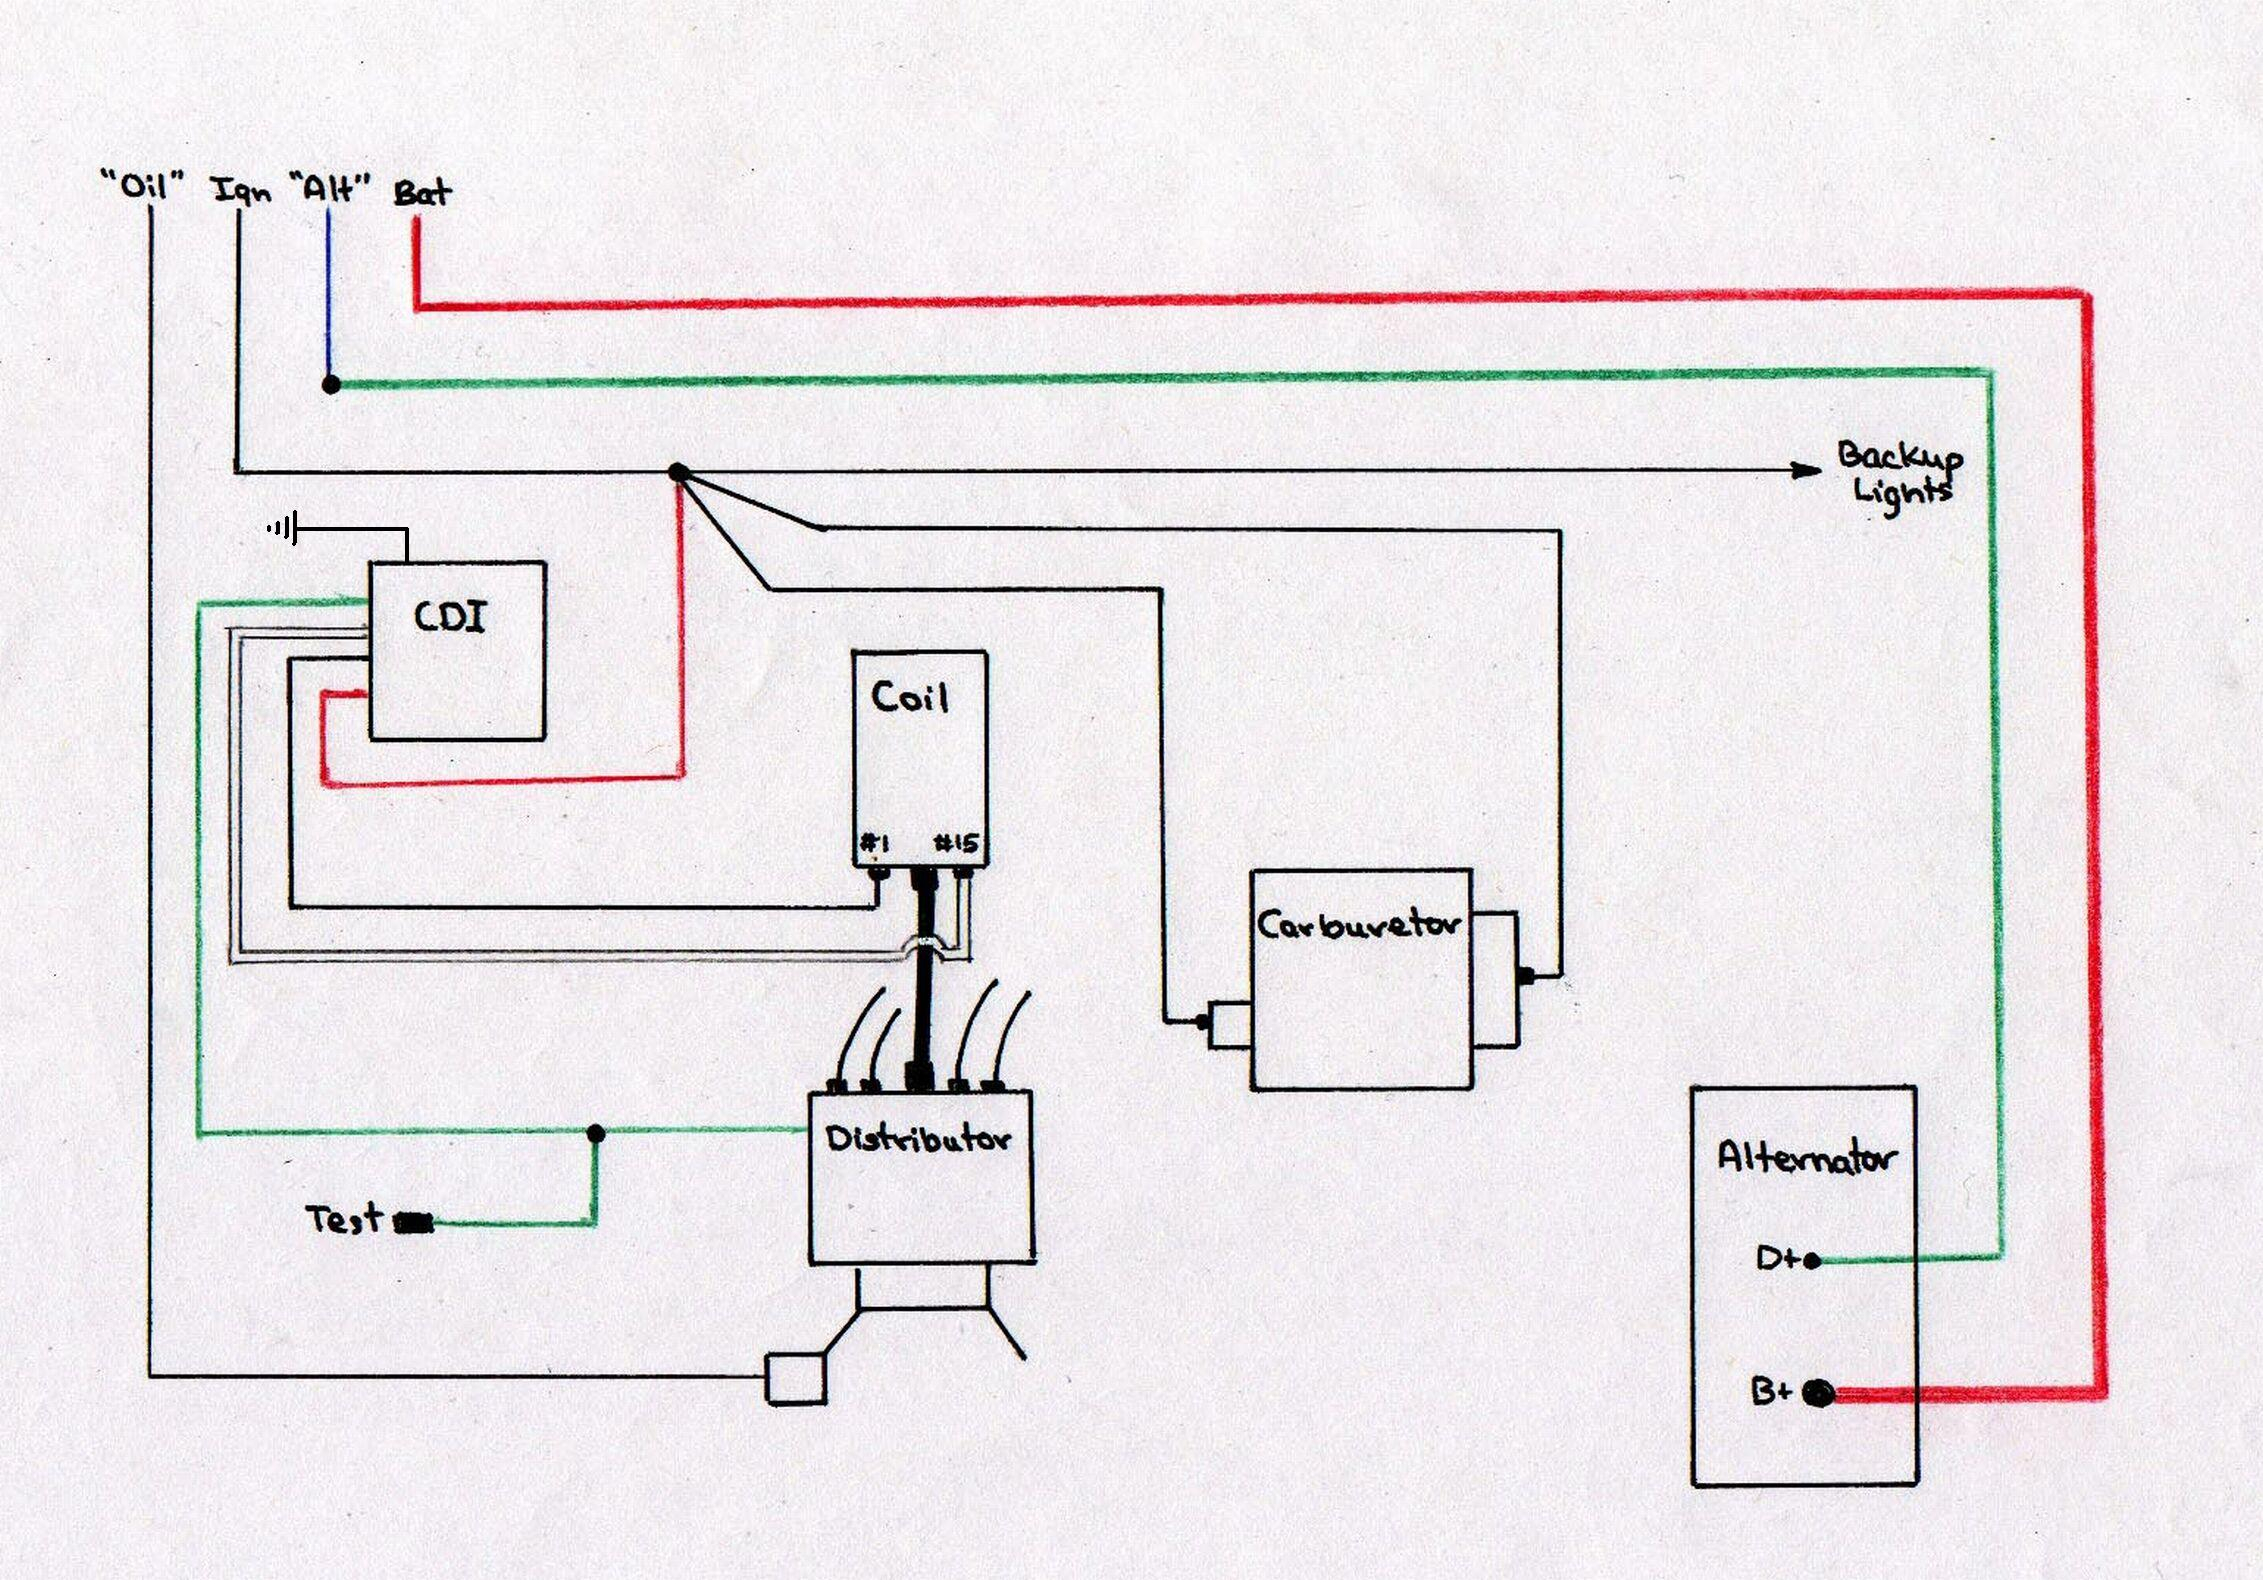 Diagram Honda Cdi Wiring Diagram Full Version Hd Quality Wiring Diagram Usdiagram Jepix Fr